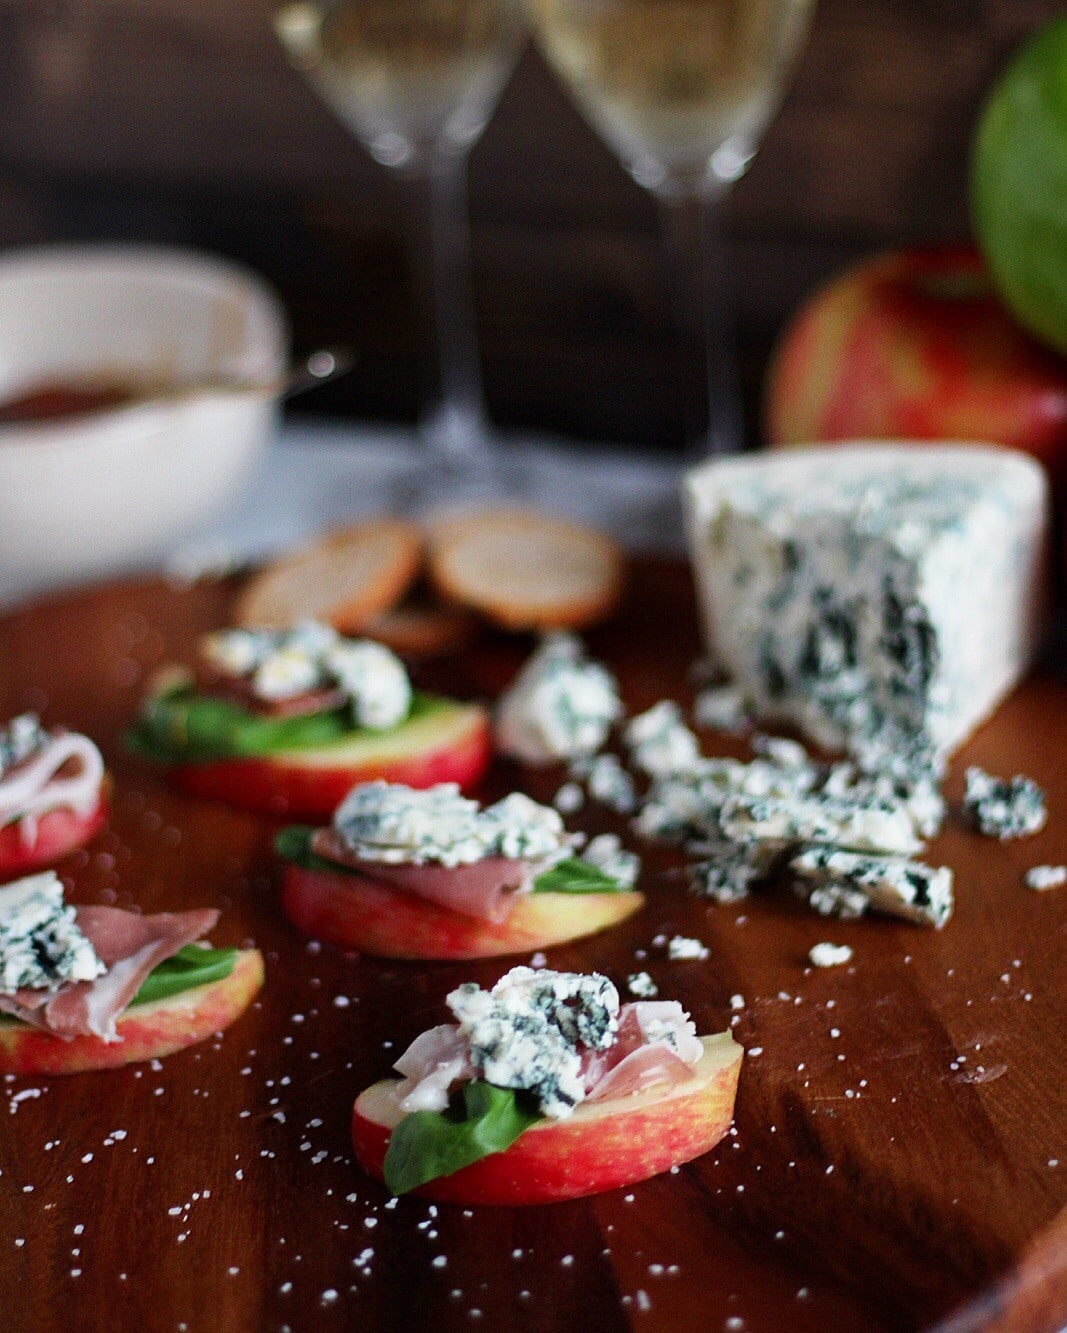 Simple Apple Wedge + Basil, Prosciutto and Blue Cheese with Pear-Infused White Balsamic Glaze. A simple and classy appetizer for your next holiday party! thewoodenskillet.com #foodphotography